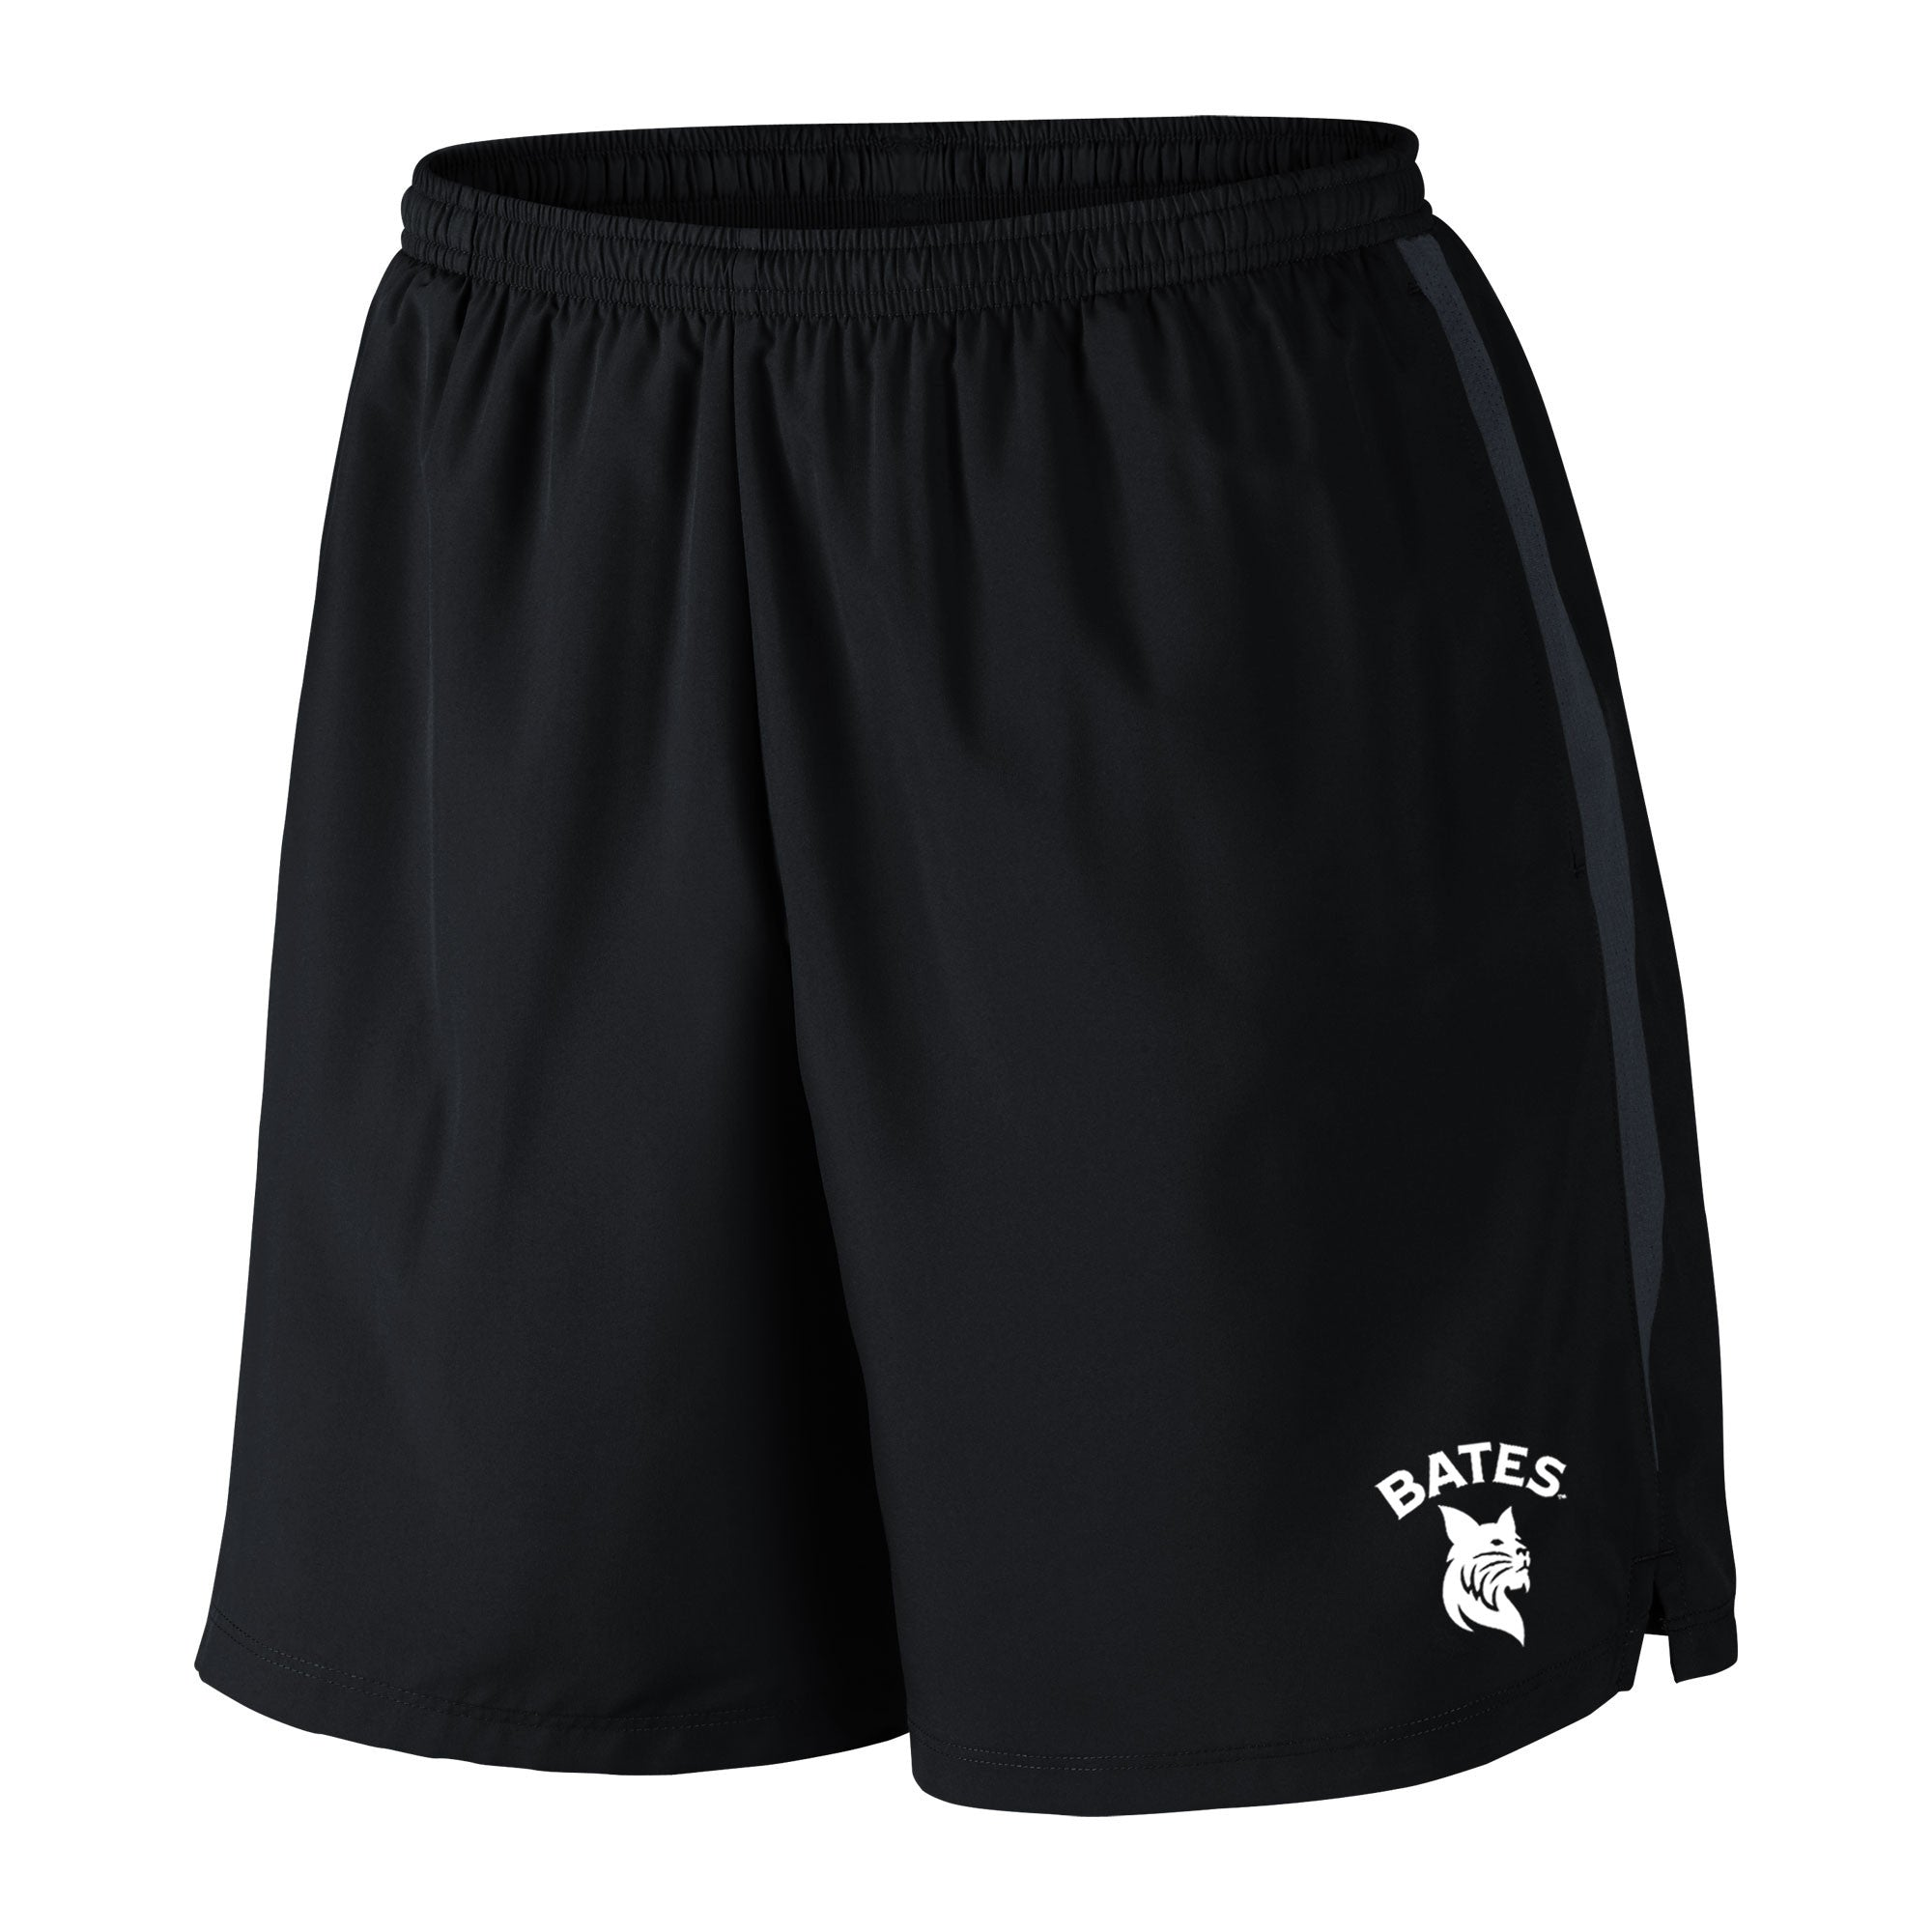 Men's Nike Challenger Shorts - Bottoms, Men's